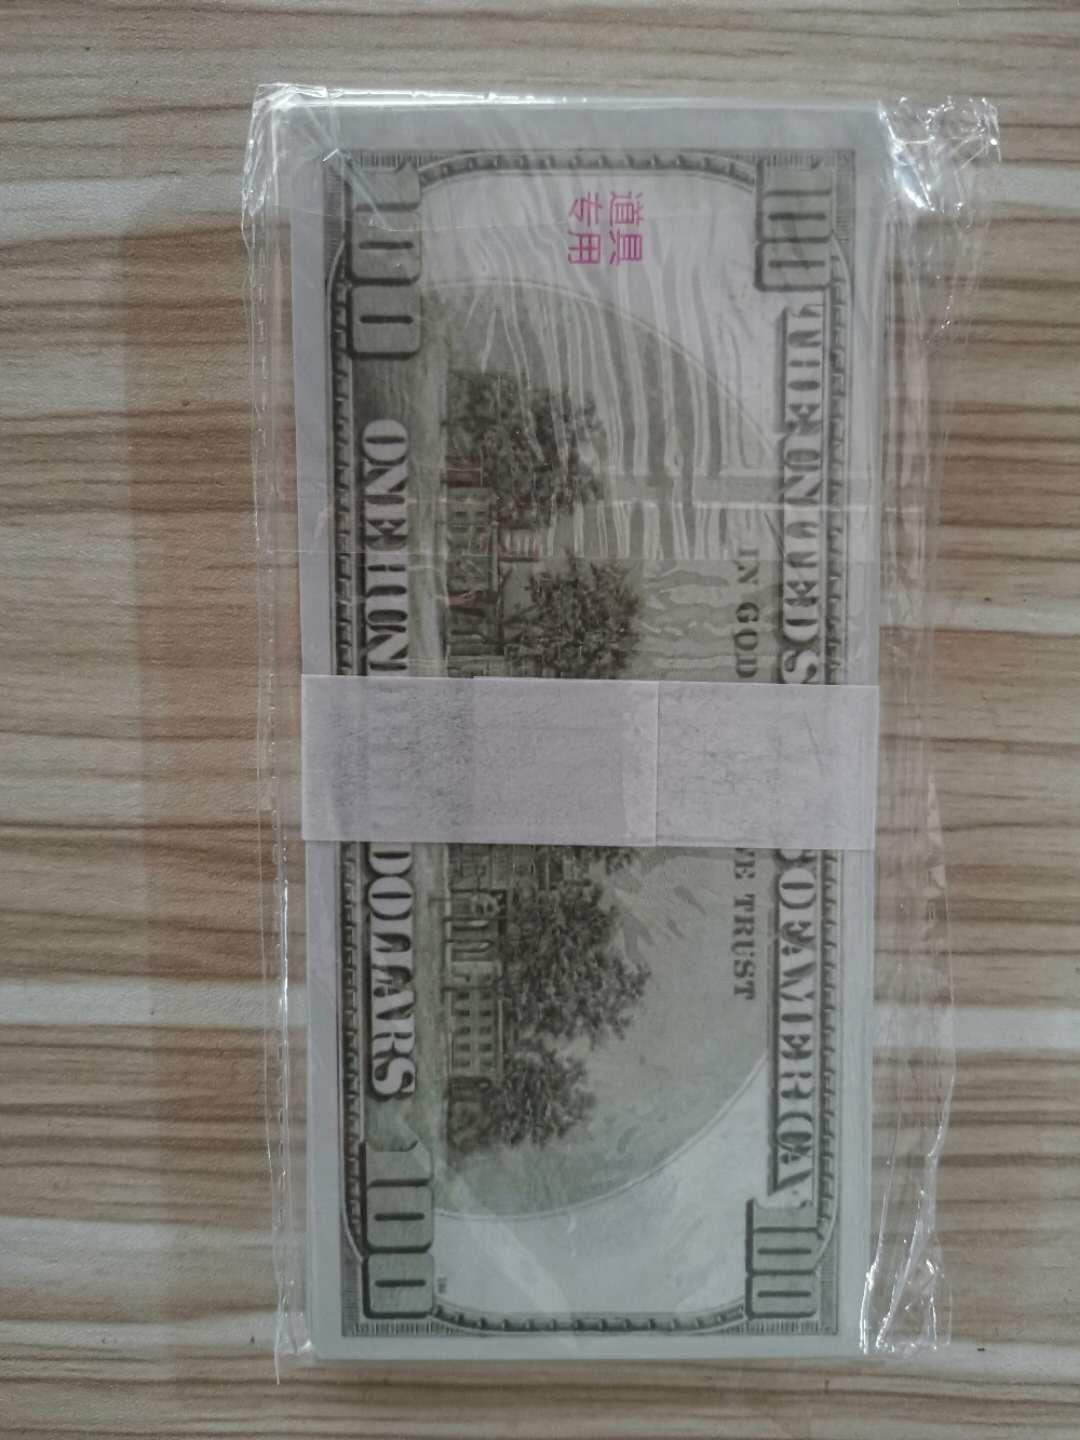 2Hot selling counterfeit DOLLAR euro banknote toy movie props old version of $100 practice notes game 100 tokens